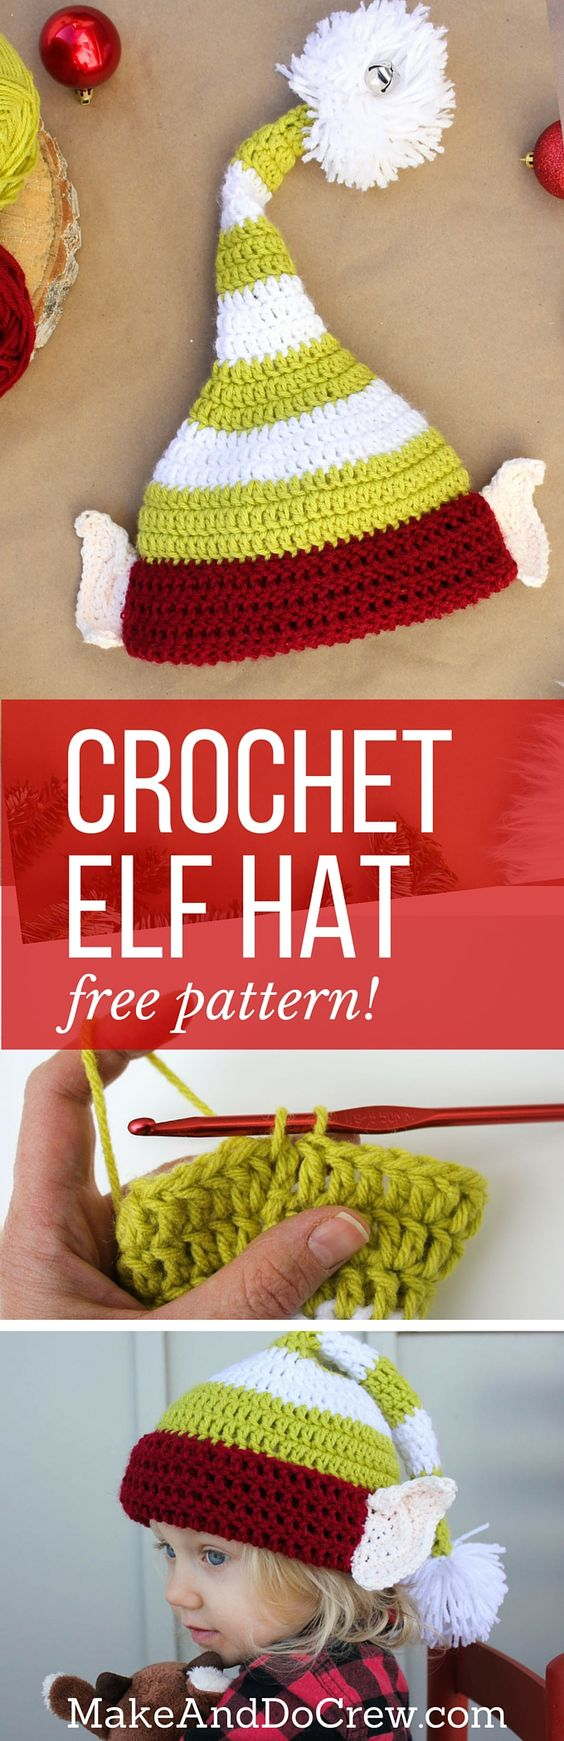 Santas Helper Free Crochet Elf Hat Pattern (With Ears ...